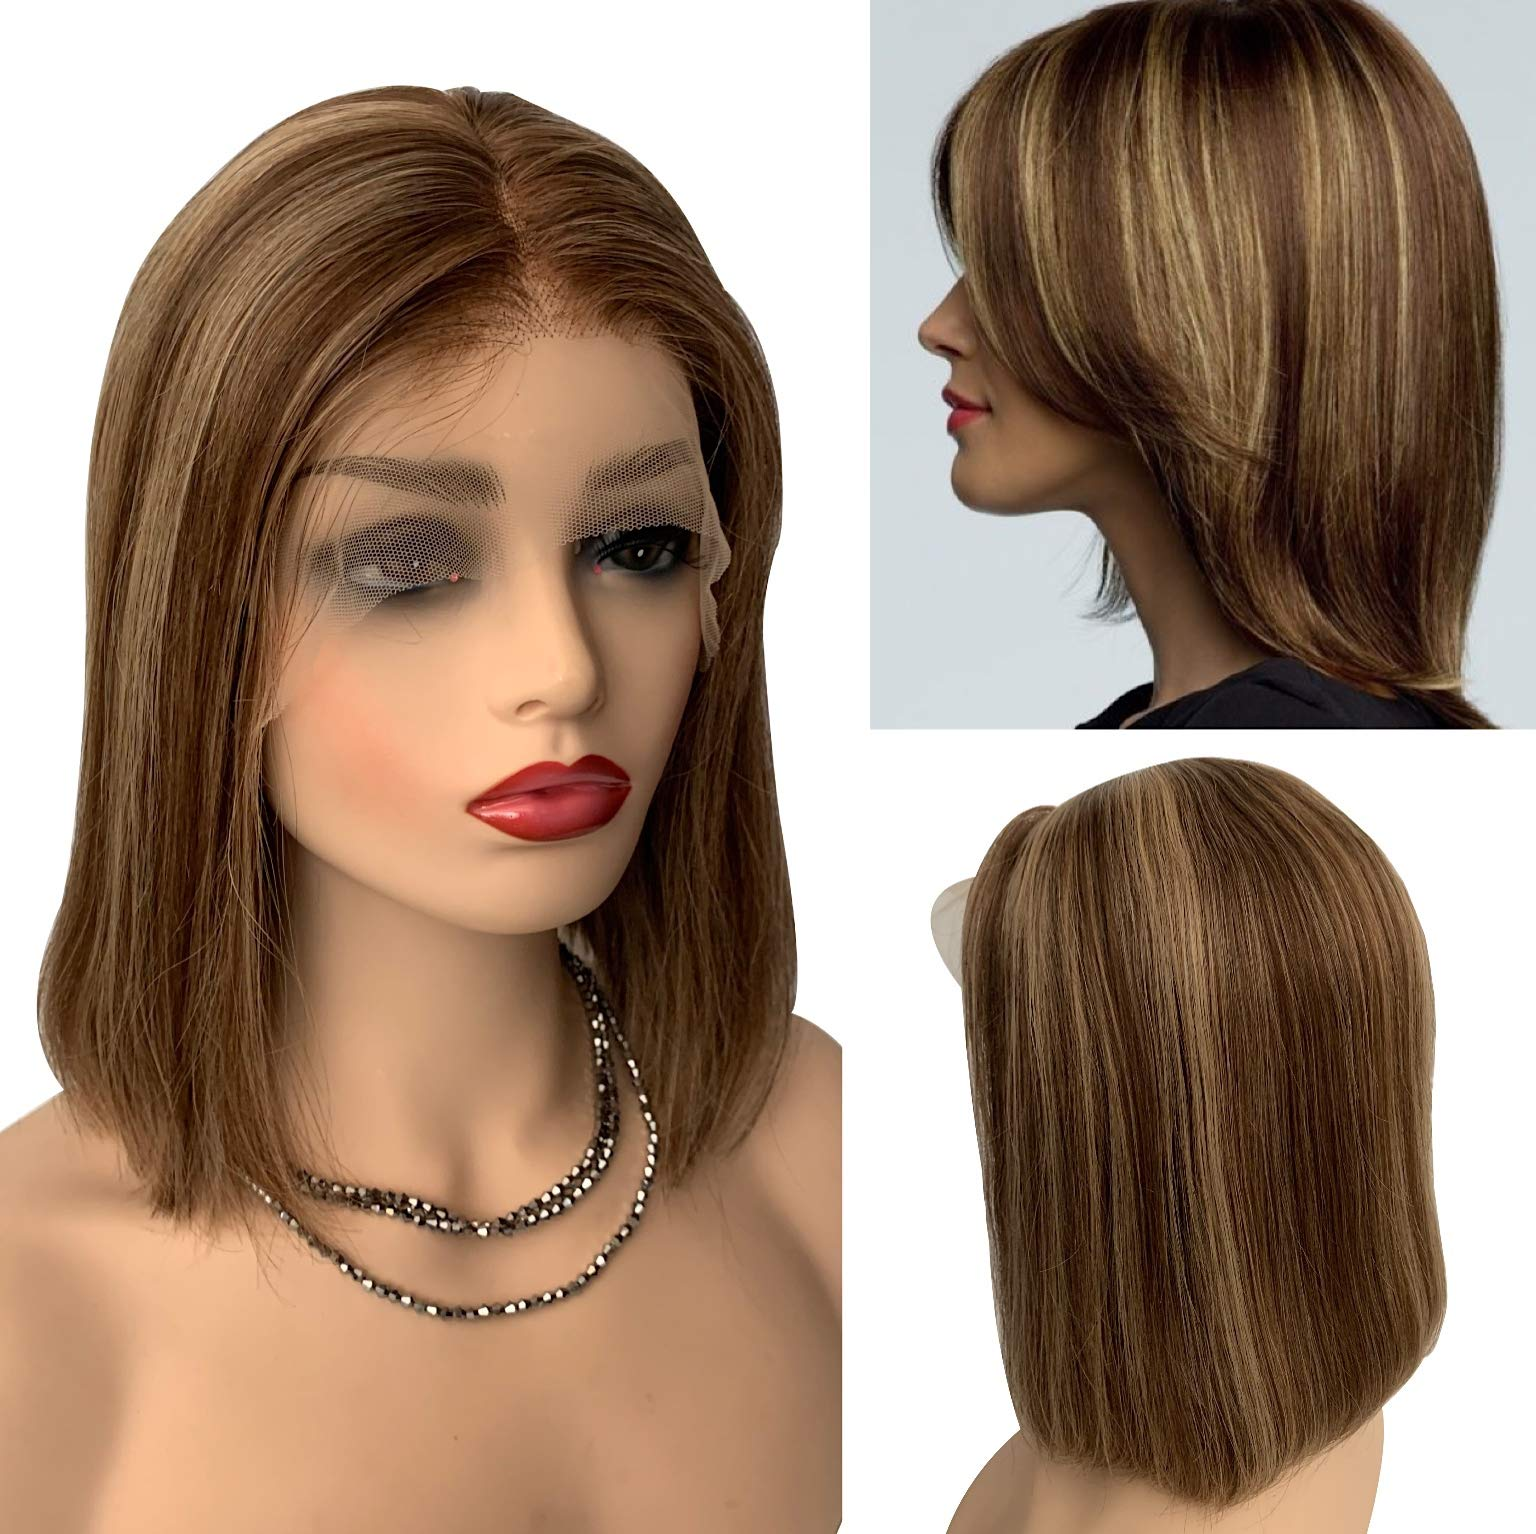 Ombre Wigs Brazilians Human Hair Lace Front Wig 13x4 Pre Plucked Glueless Straight Bob Density 150% Medium Brown Roots Balayage Strawberry Blonde Bleached Knot #4T4/27 12inch by Arbbyibee